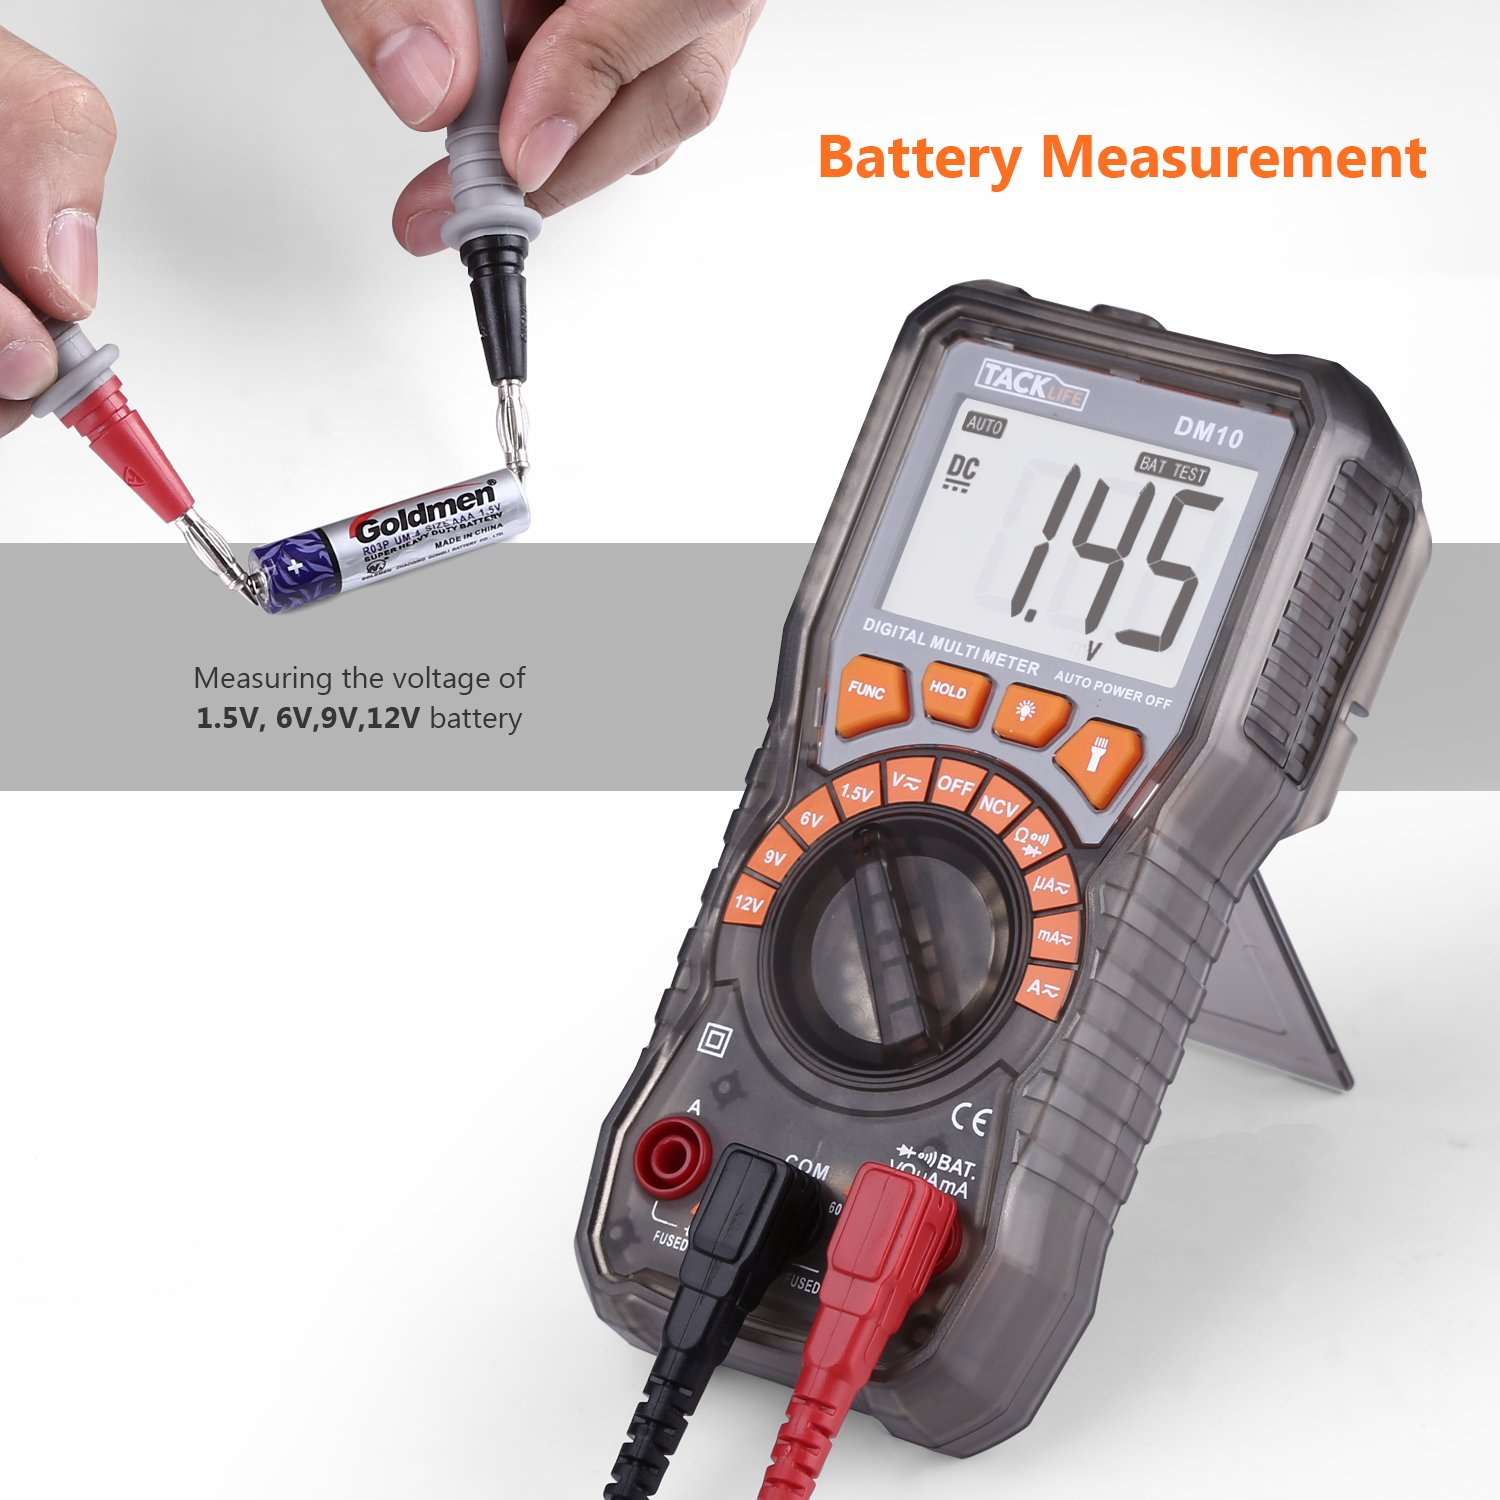 Tacklife Multimeter Dm10 Digital Electrical Tester Auto Ranging Buy Circuit Testerelectrical Testerac Dc Voltage Battery Ac Current Resistance Continuity Diode Measuring Meter With